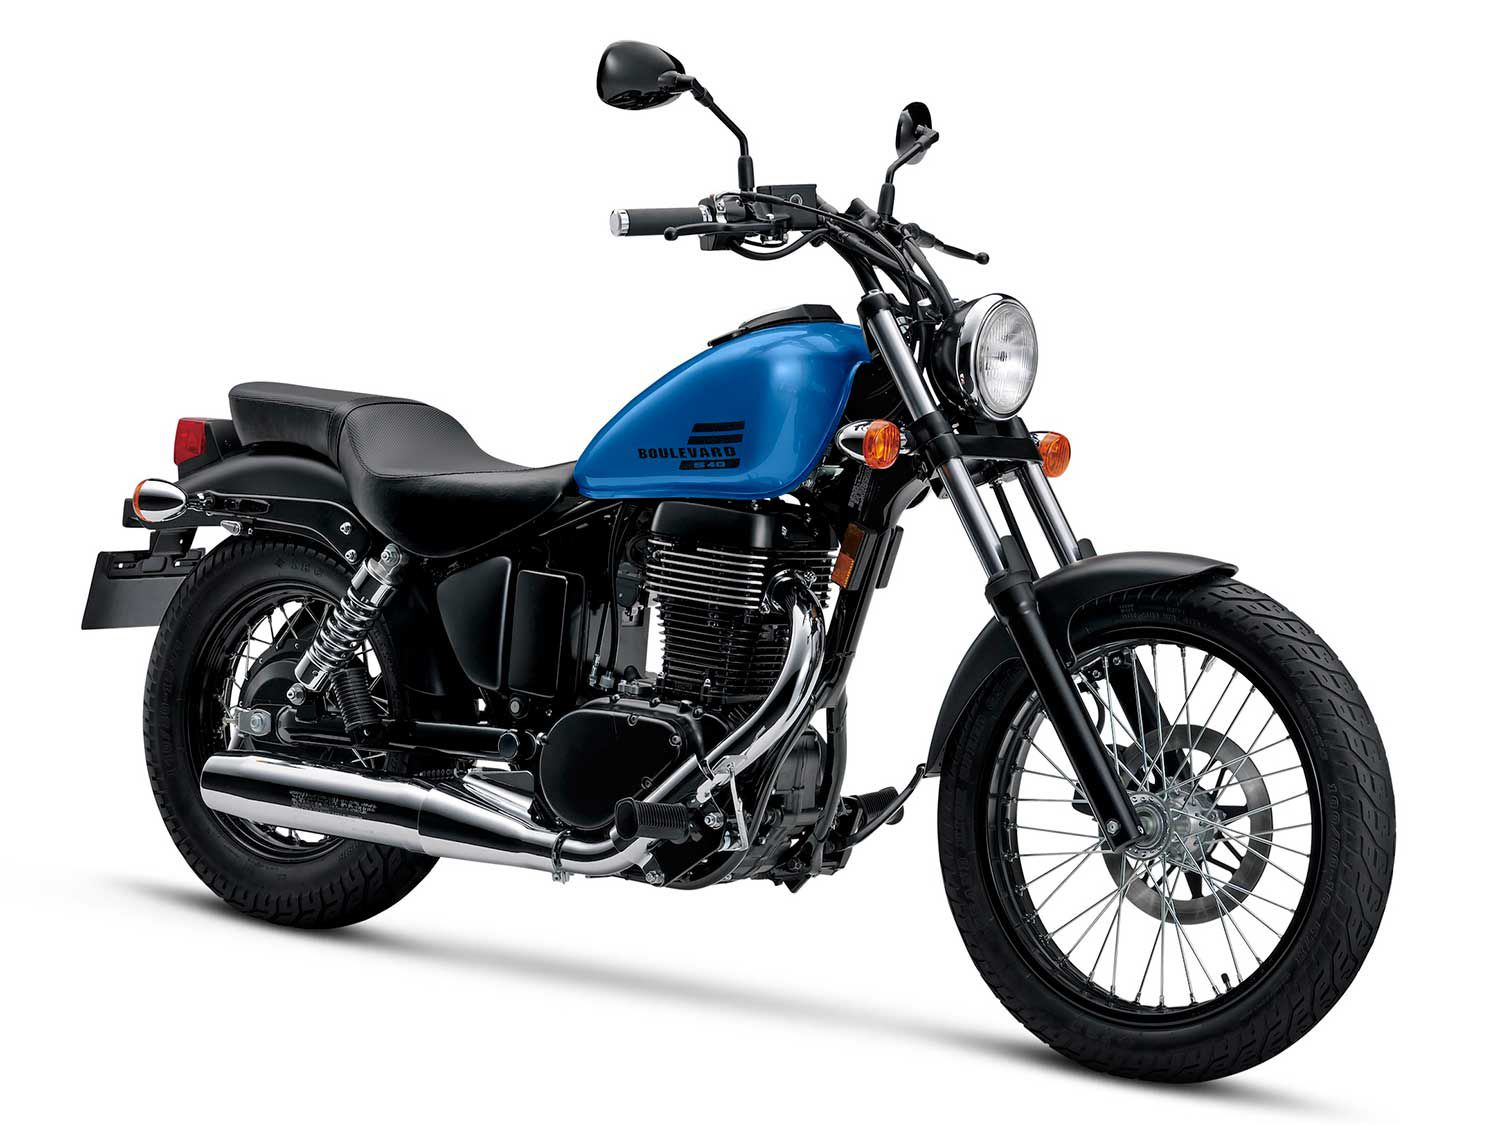 A classically styled cruiser unfettered by the latest motorcycle gizmos.